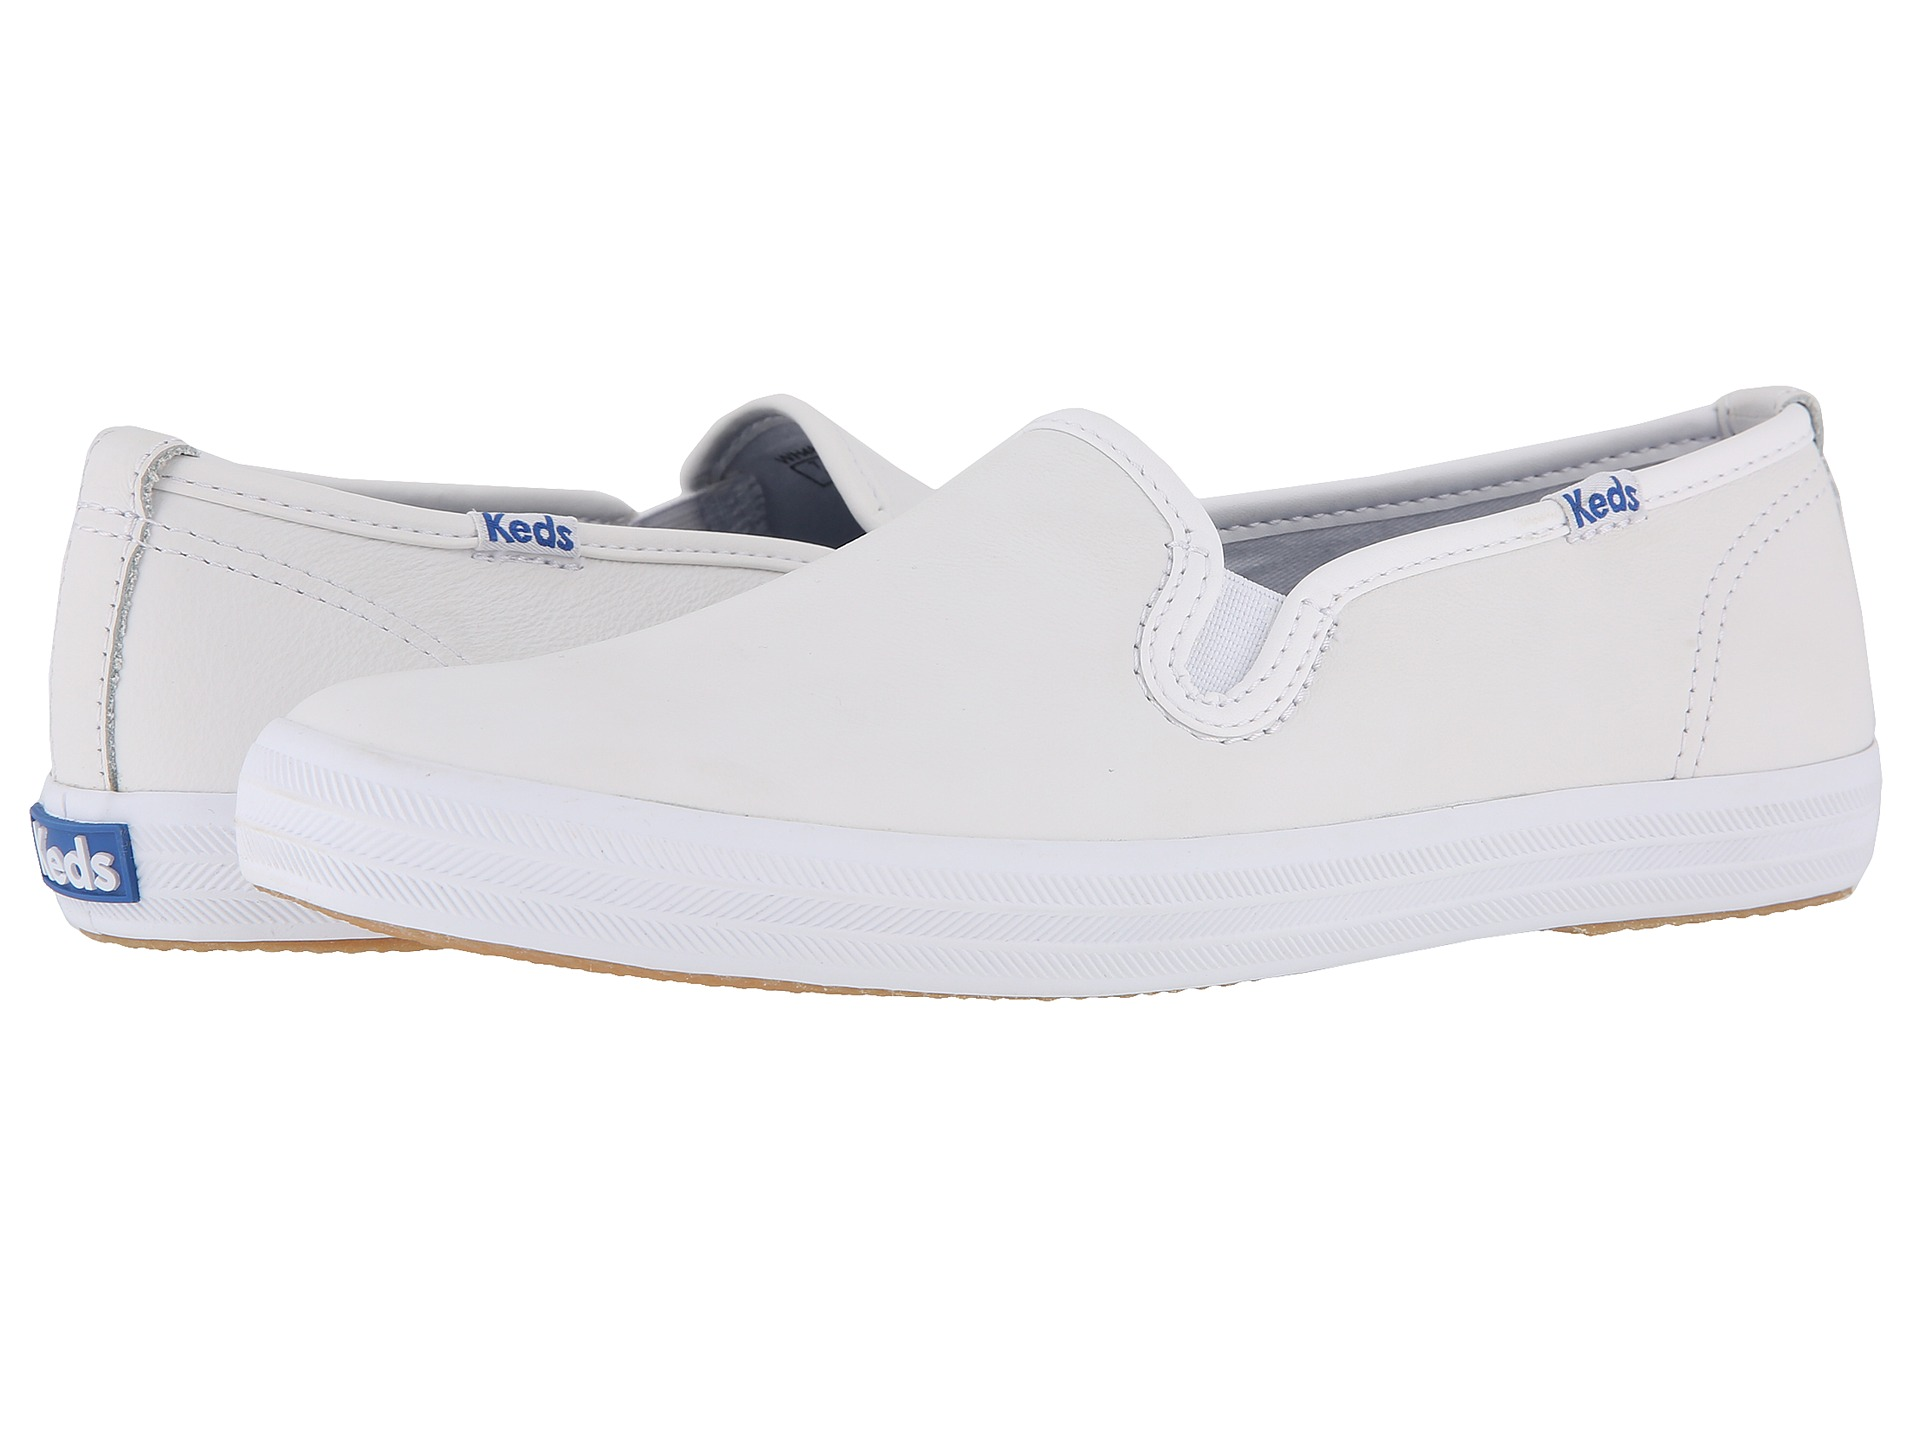 keds womens champion leather slip on sneaker